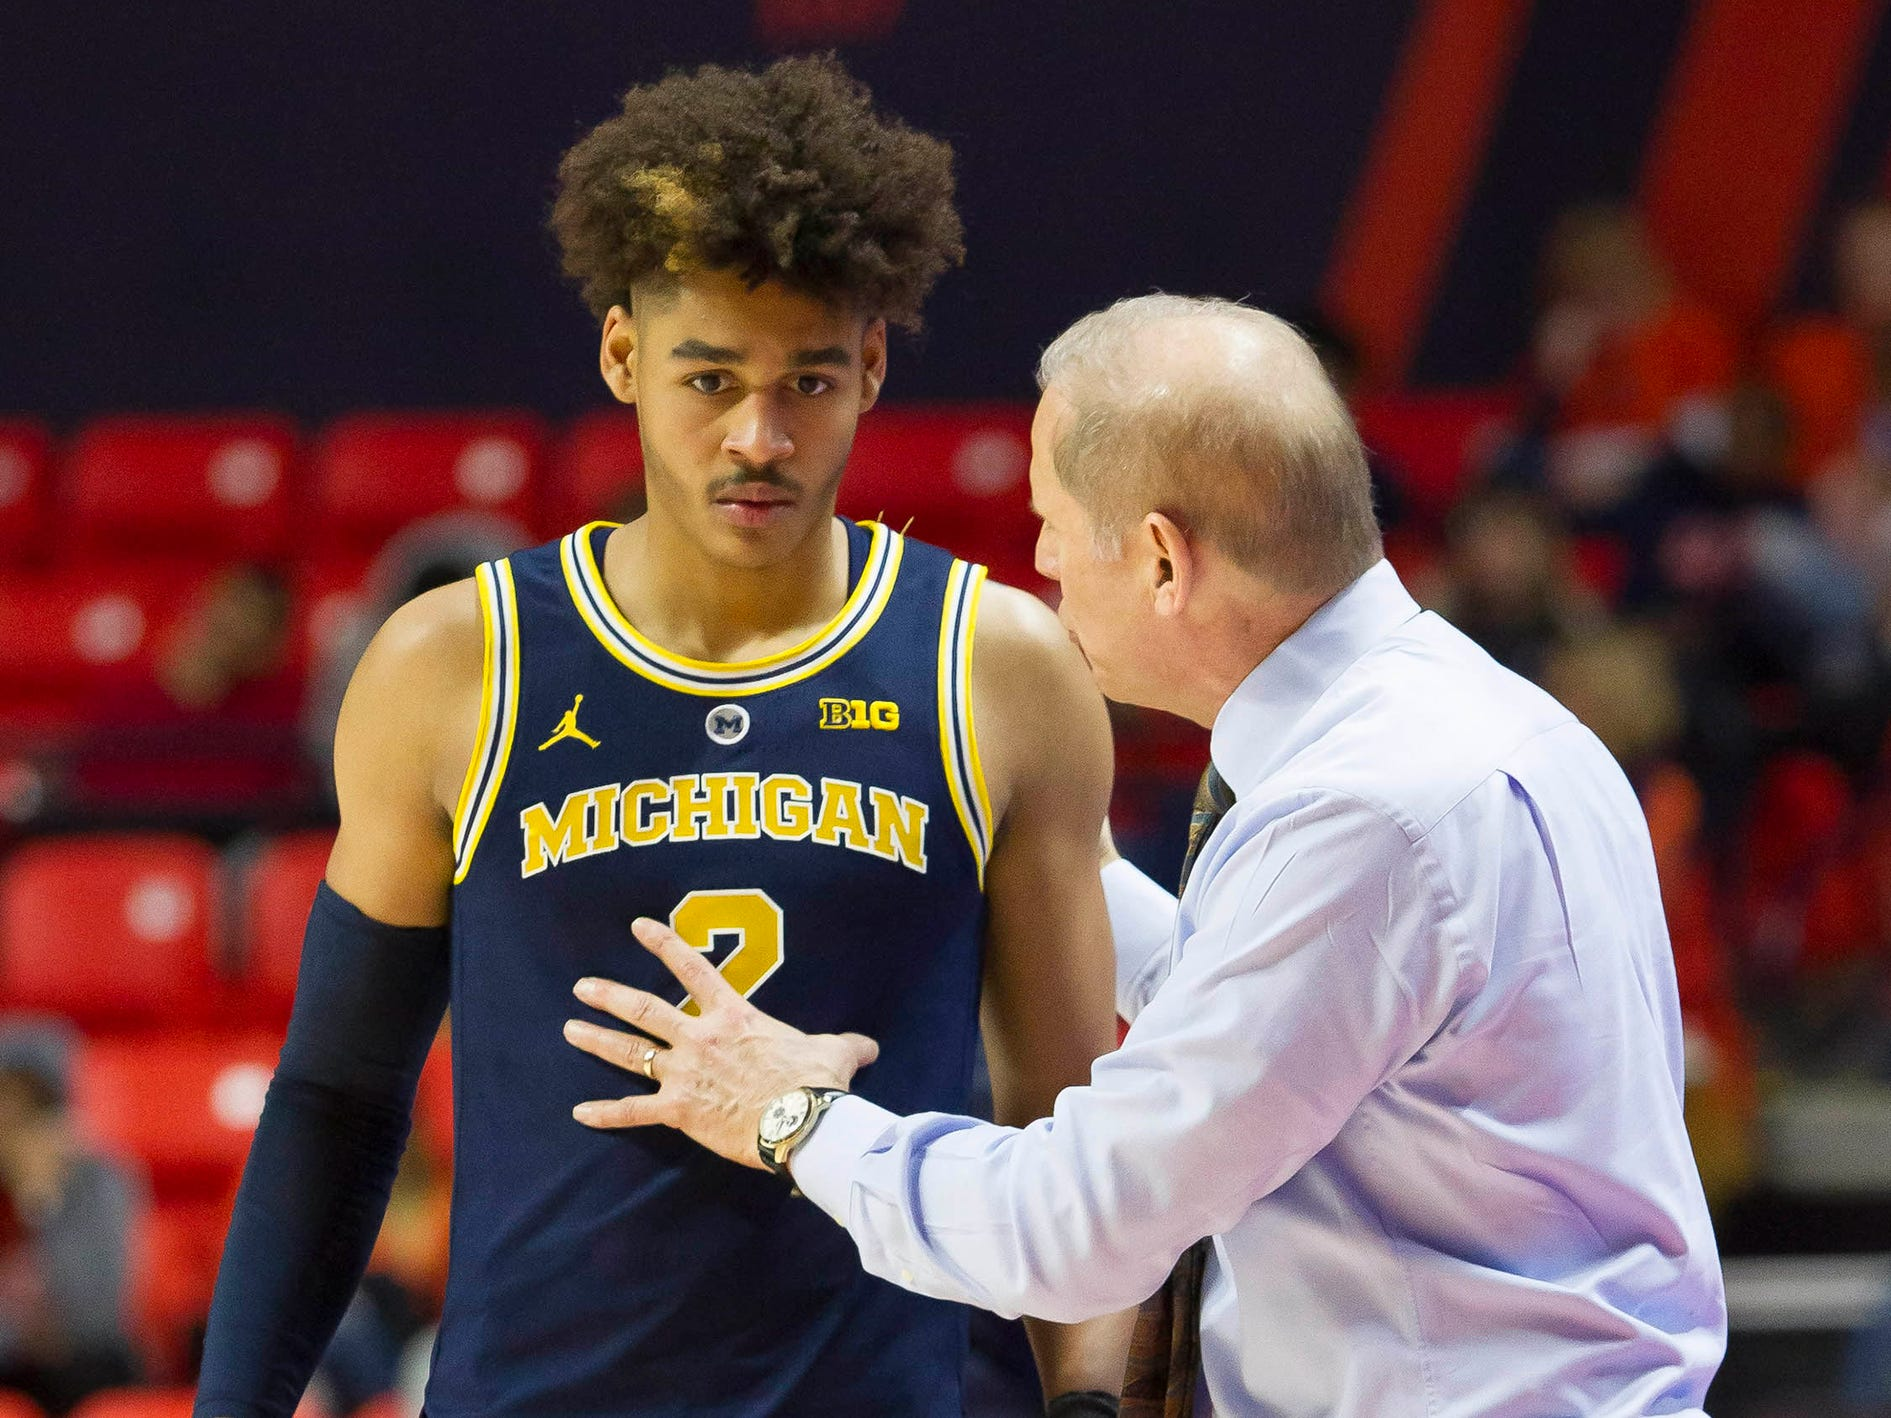 Michigan coach John Beilein has a discussion with guard Jordan Poole during the second half of U-M's 79-69 win on Thursday, Jan. 10, 2019, in Champaign, Ill.